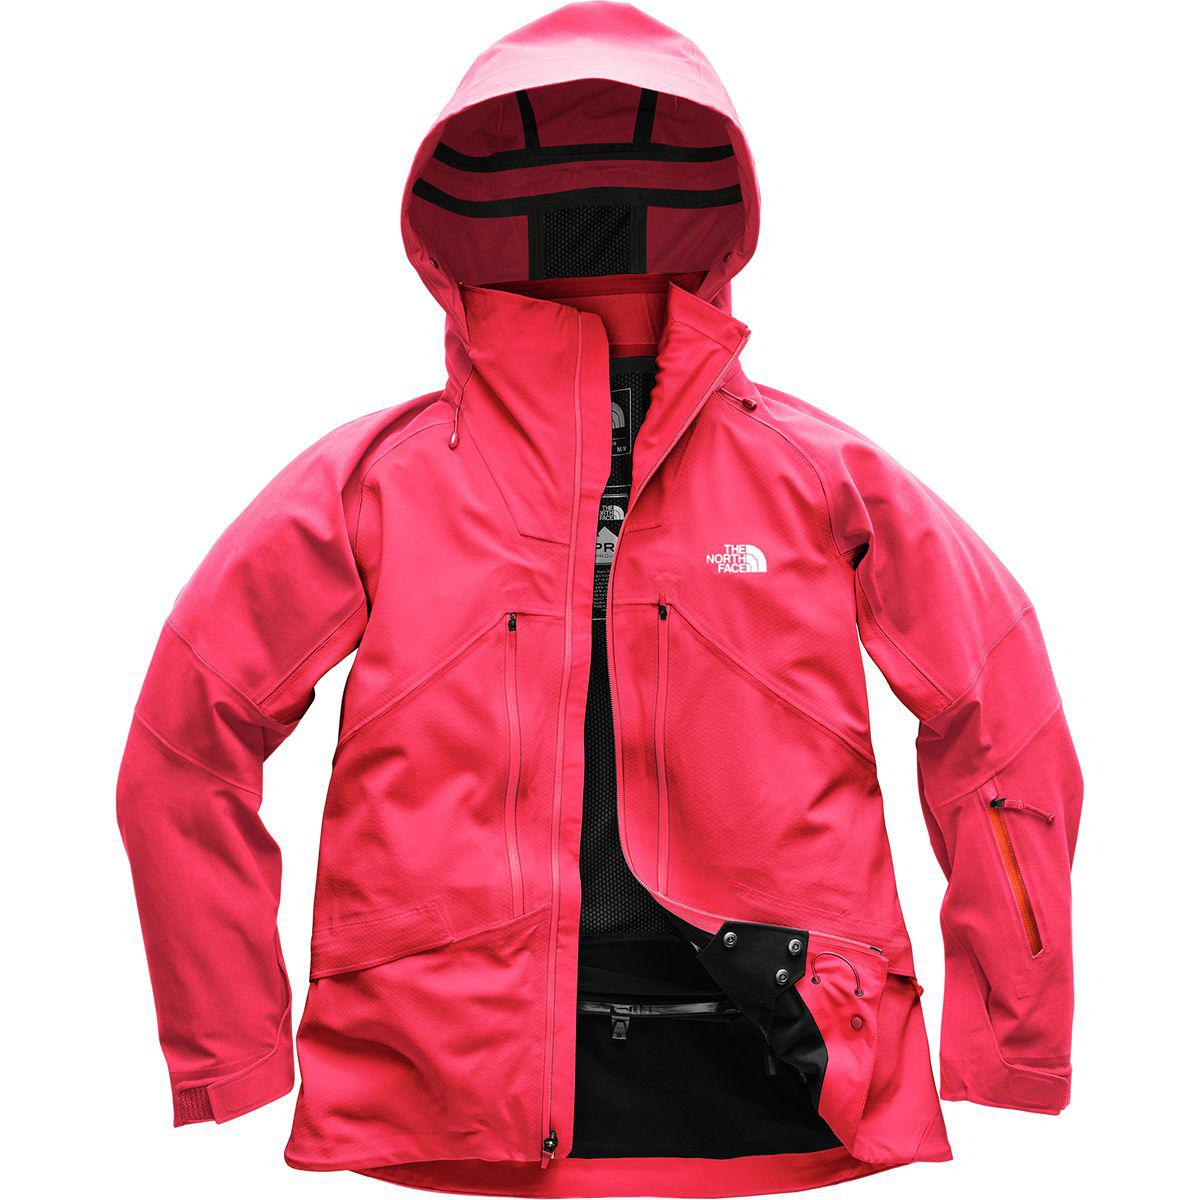 7dbce62dccf3 Lyst - The North Face Spectre Hybrid Jacket in Pink